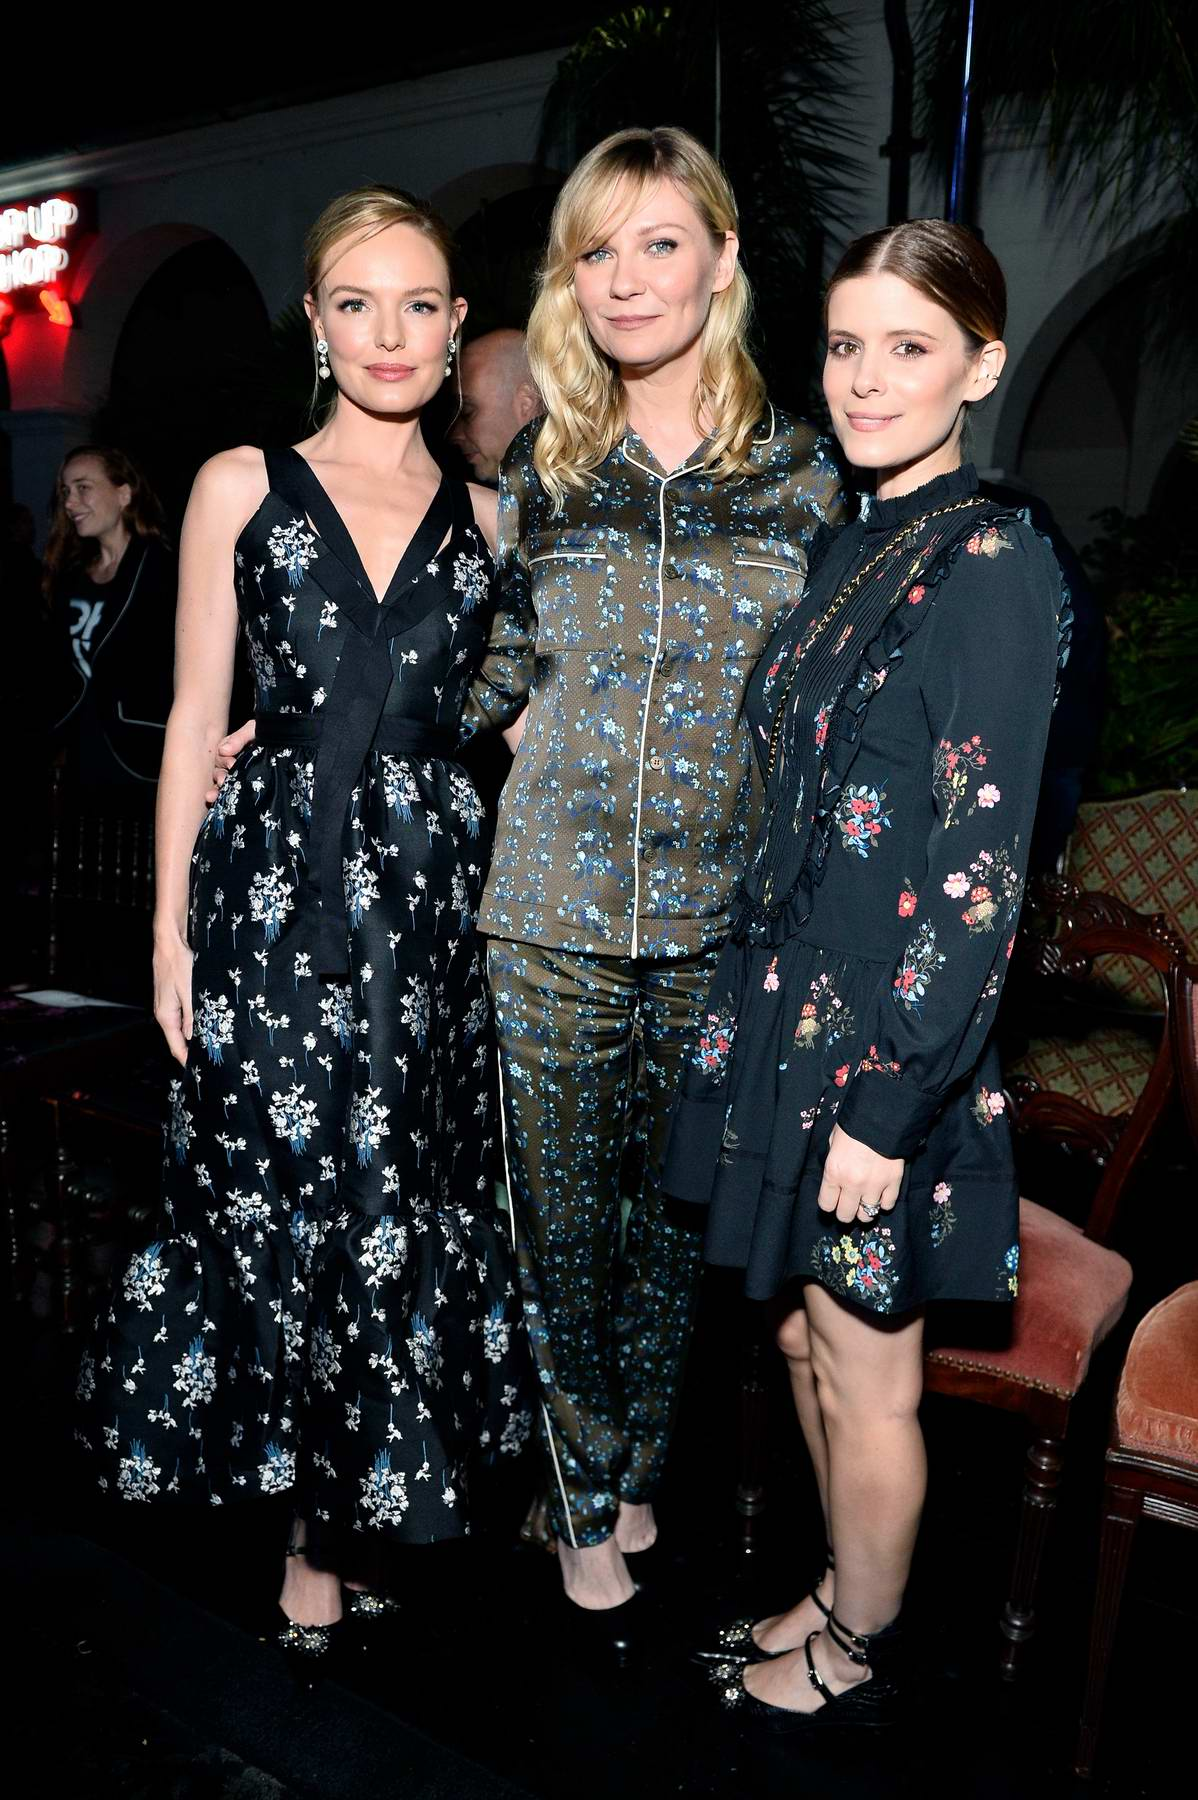 Kirsten Dunst at the Erdem X H&M launch event and show in Los Angeles